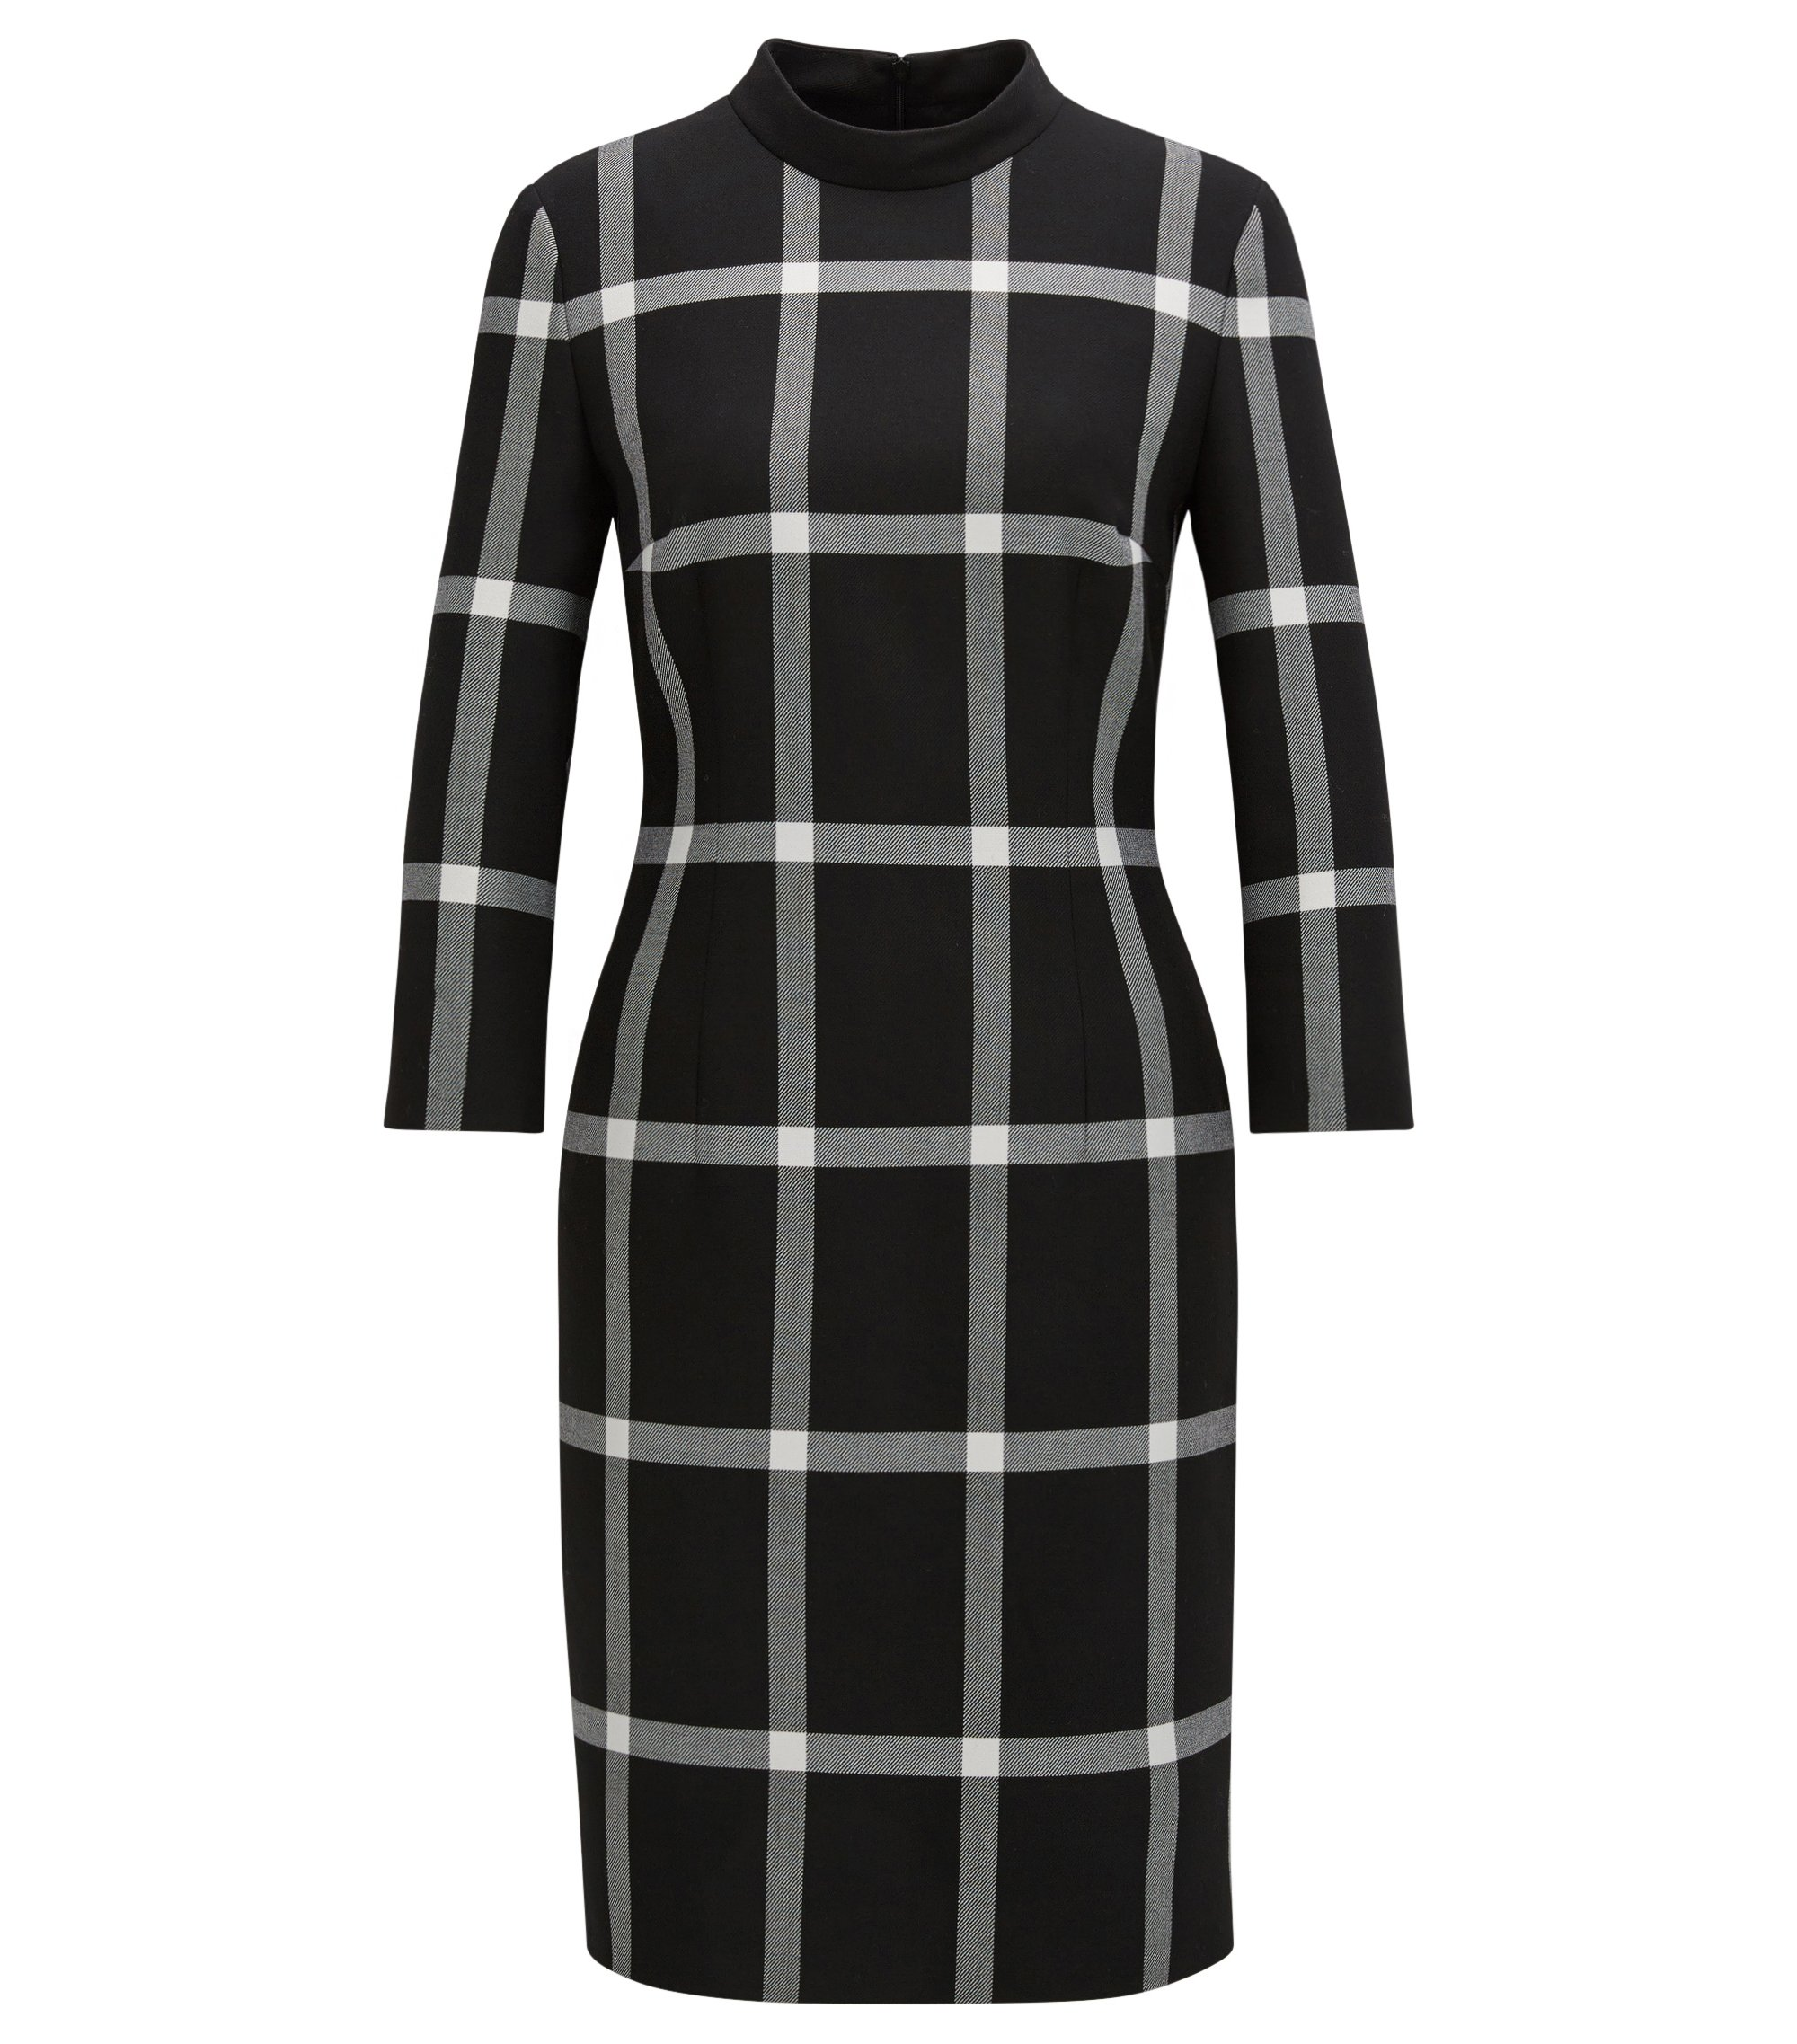 Long-sleeved dress in a checked twill, Patterned